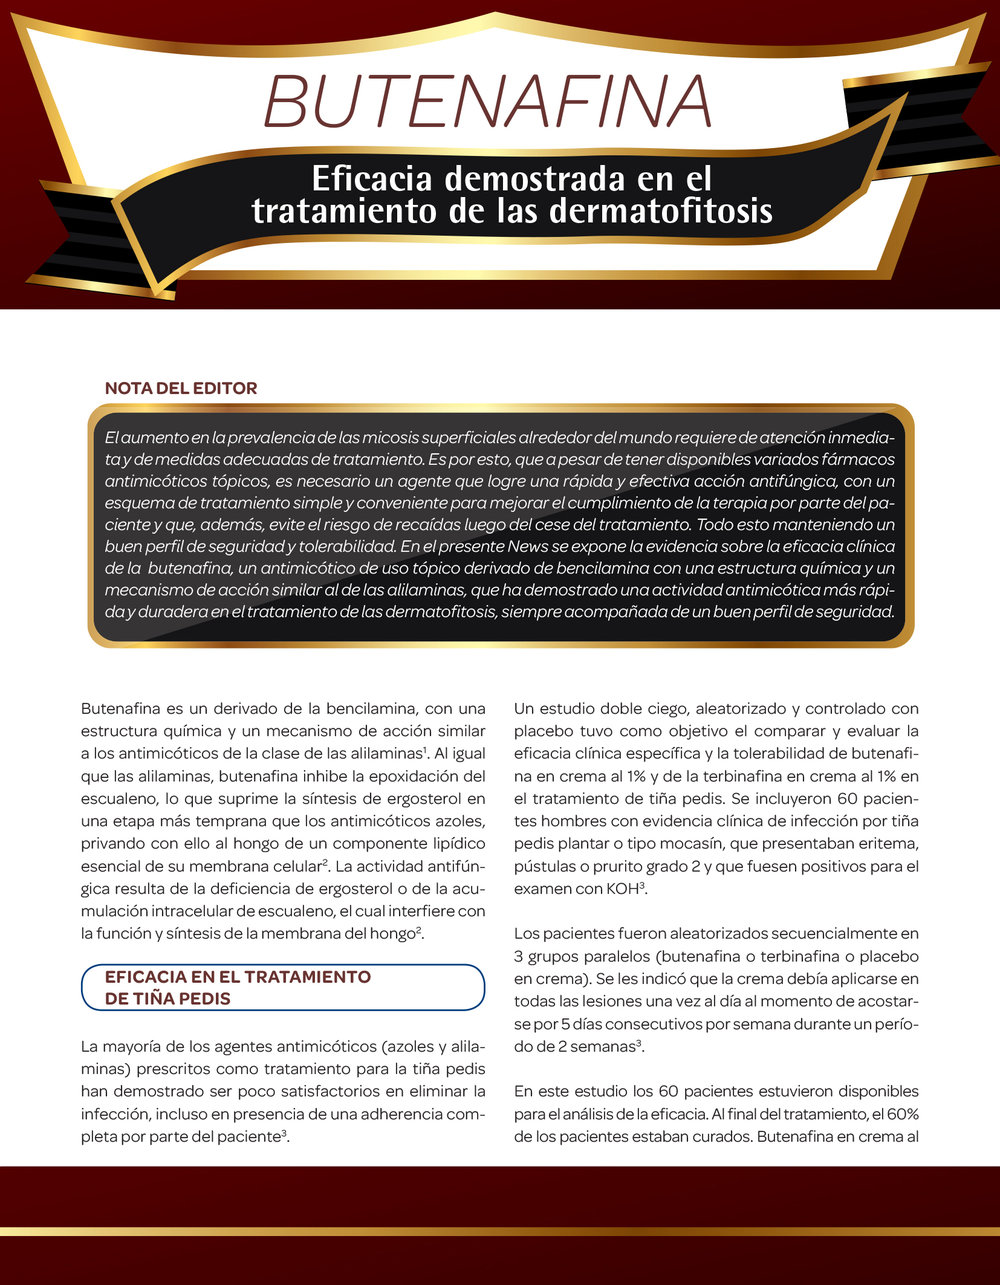 Butemax_Documento1.jpg